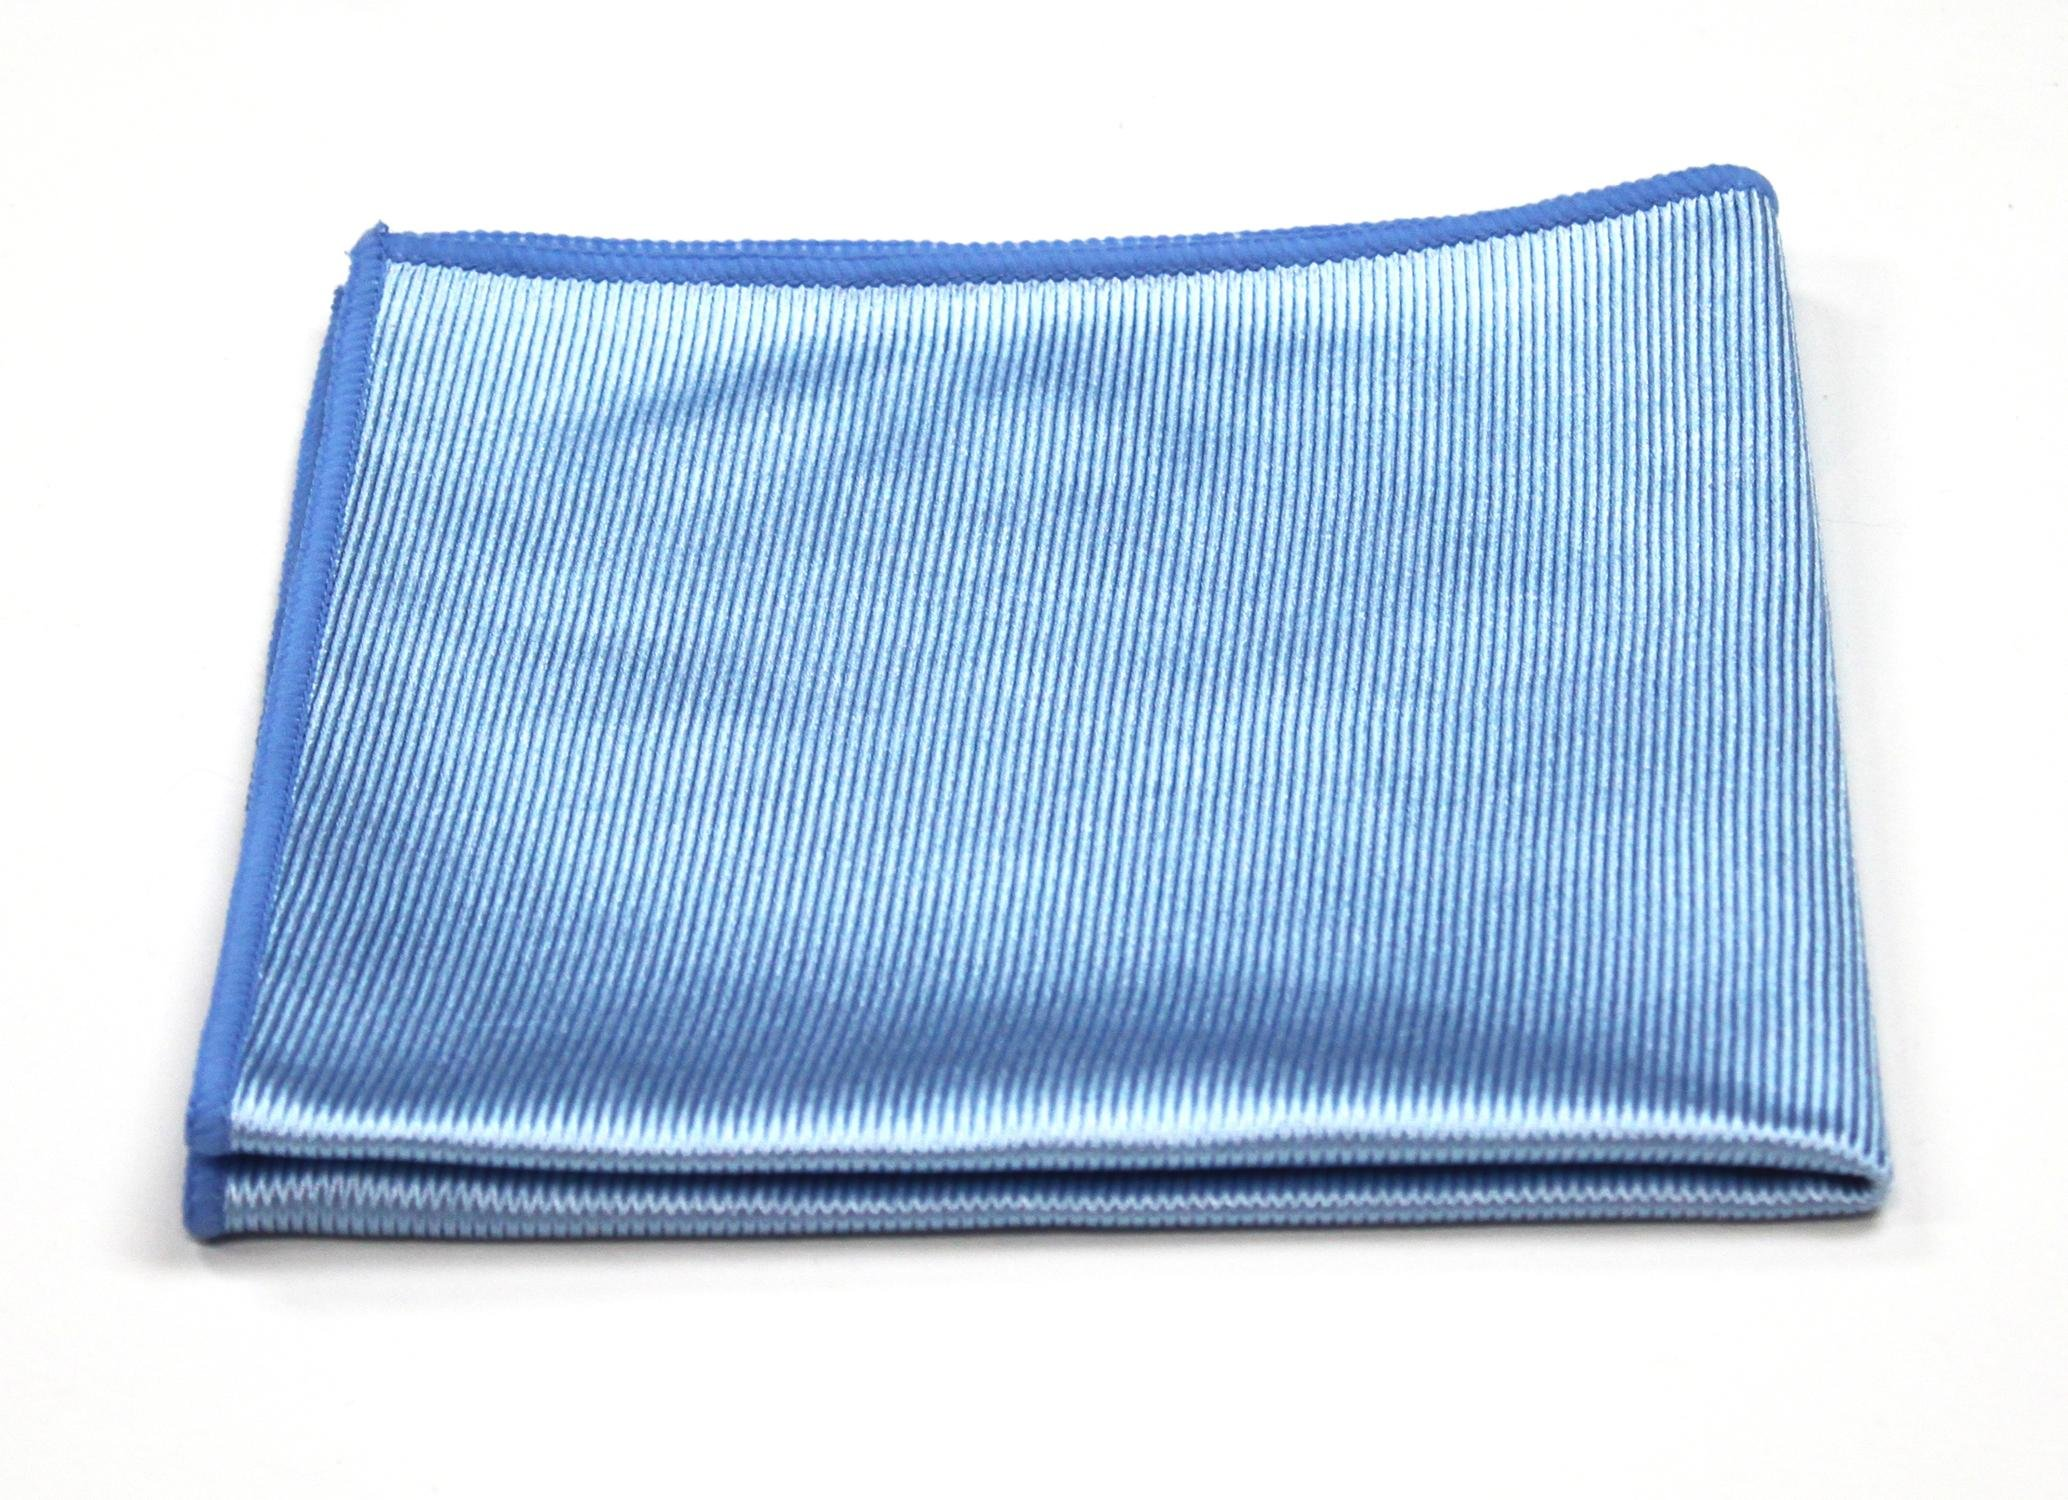 Pro-Clean Basics A73040 Microfiber Glass Cleaning Cloth, 16'' x 16''